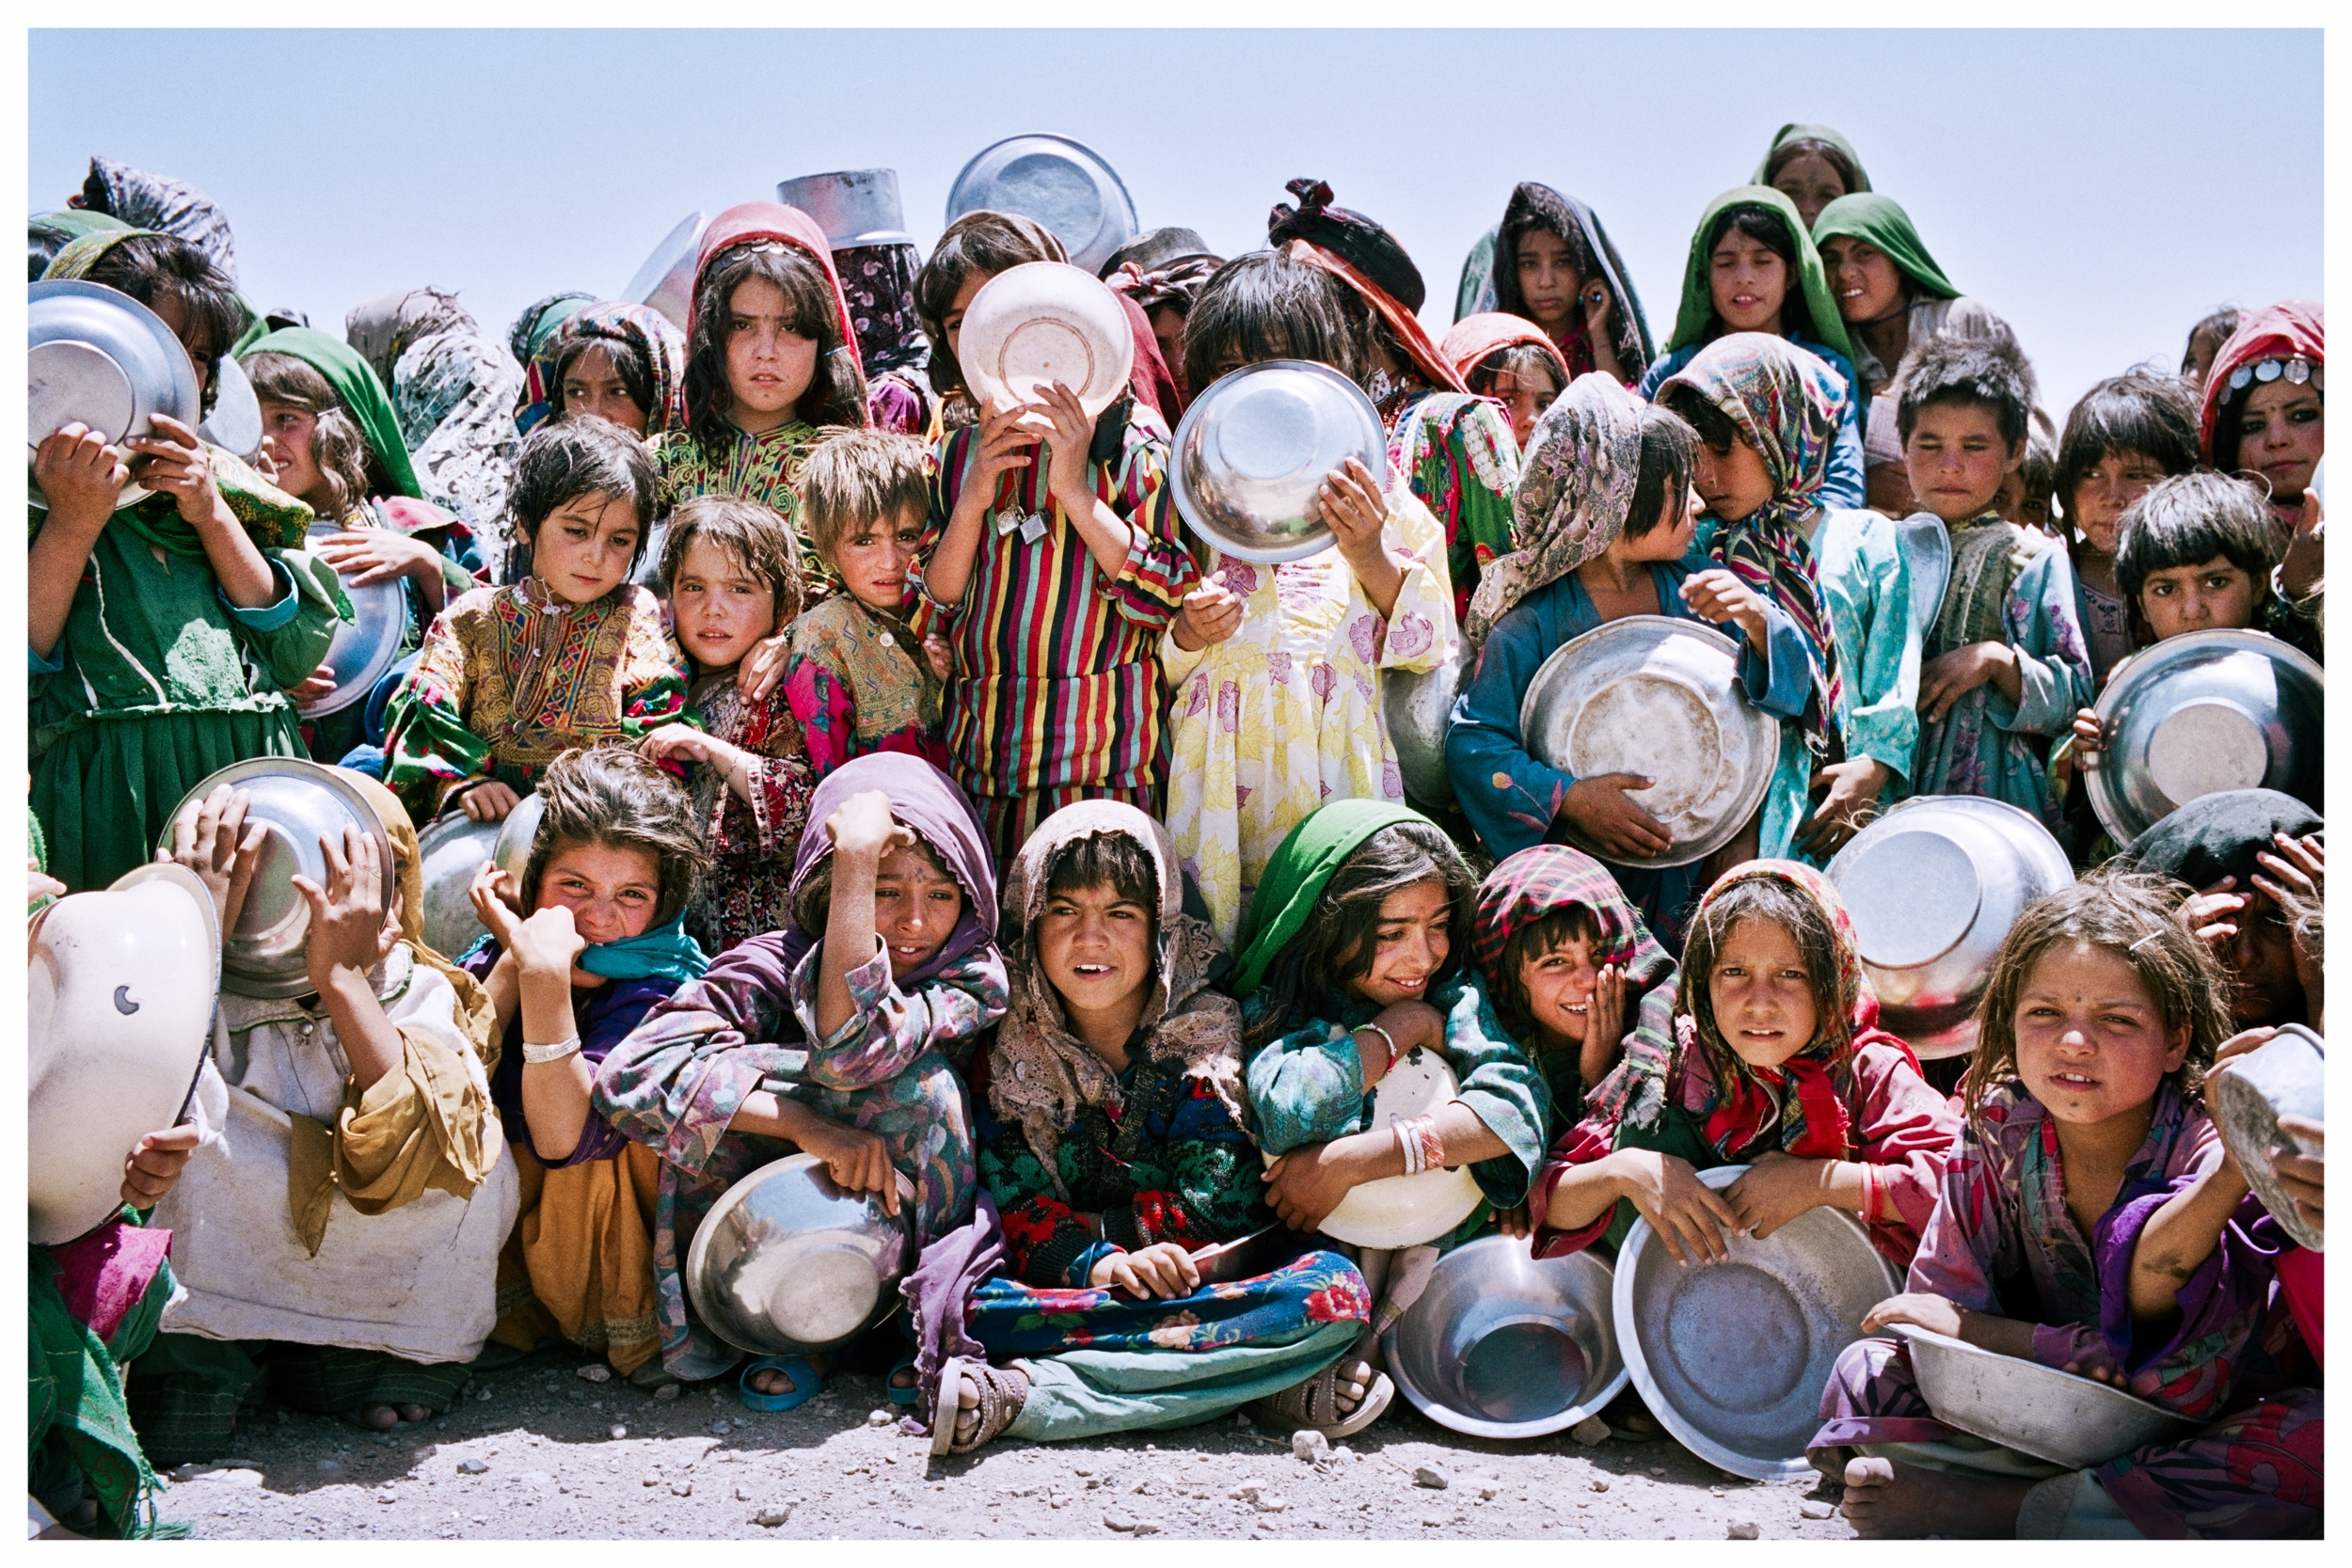 Afghan girls wait patiently in the mid-day heat to collect their ration of soup and bread.Western desert near Herat,Afghanistan. Photo © Marcus Perkins